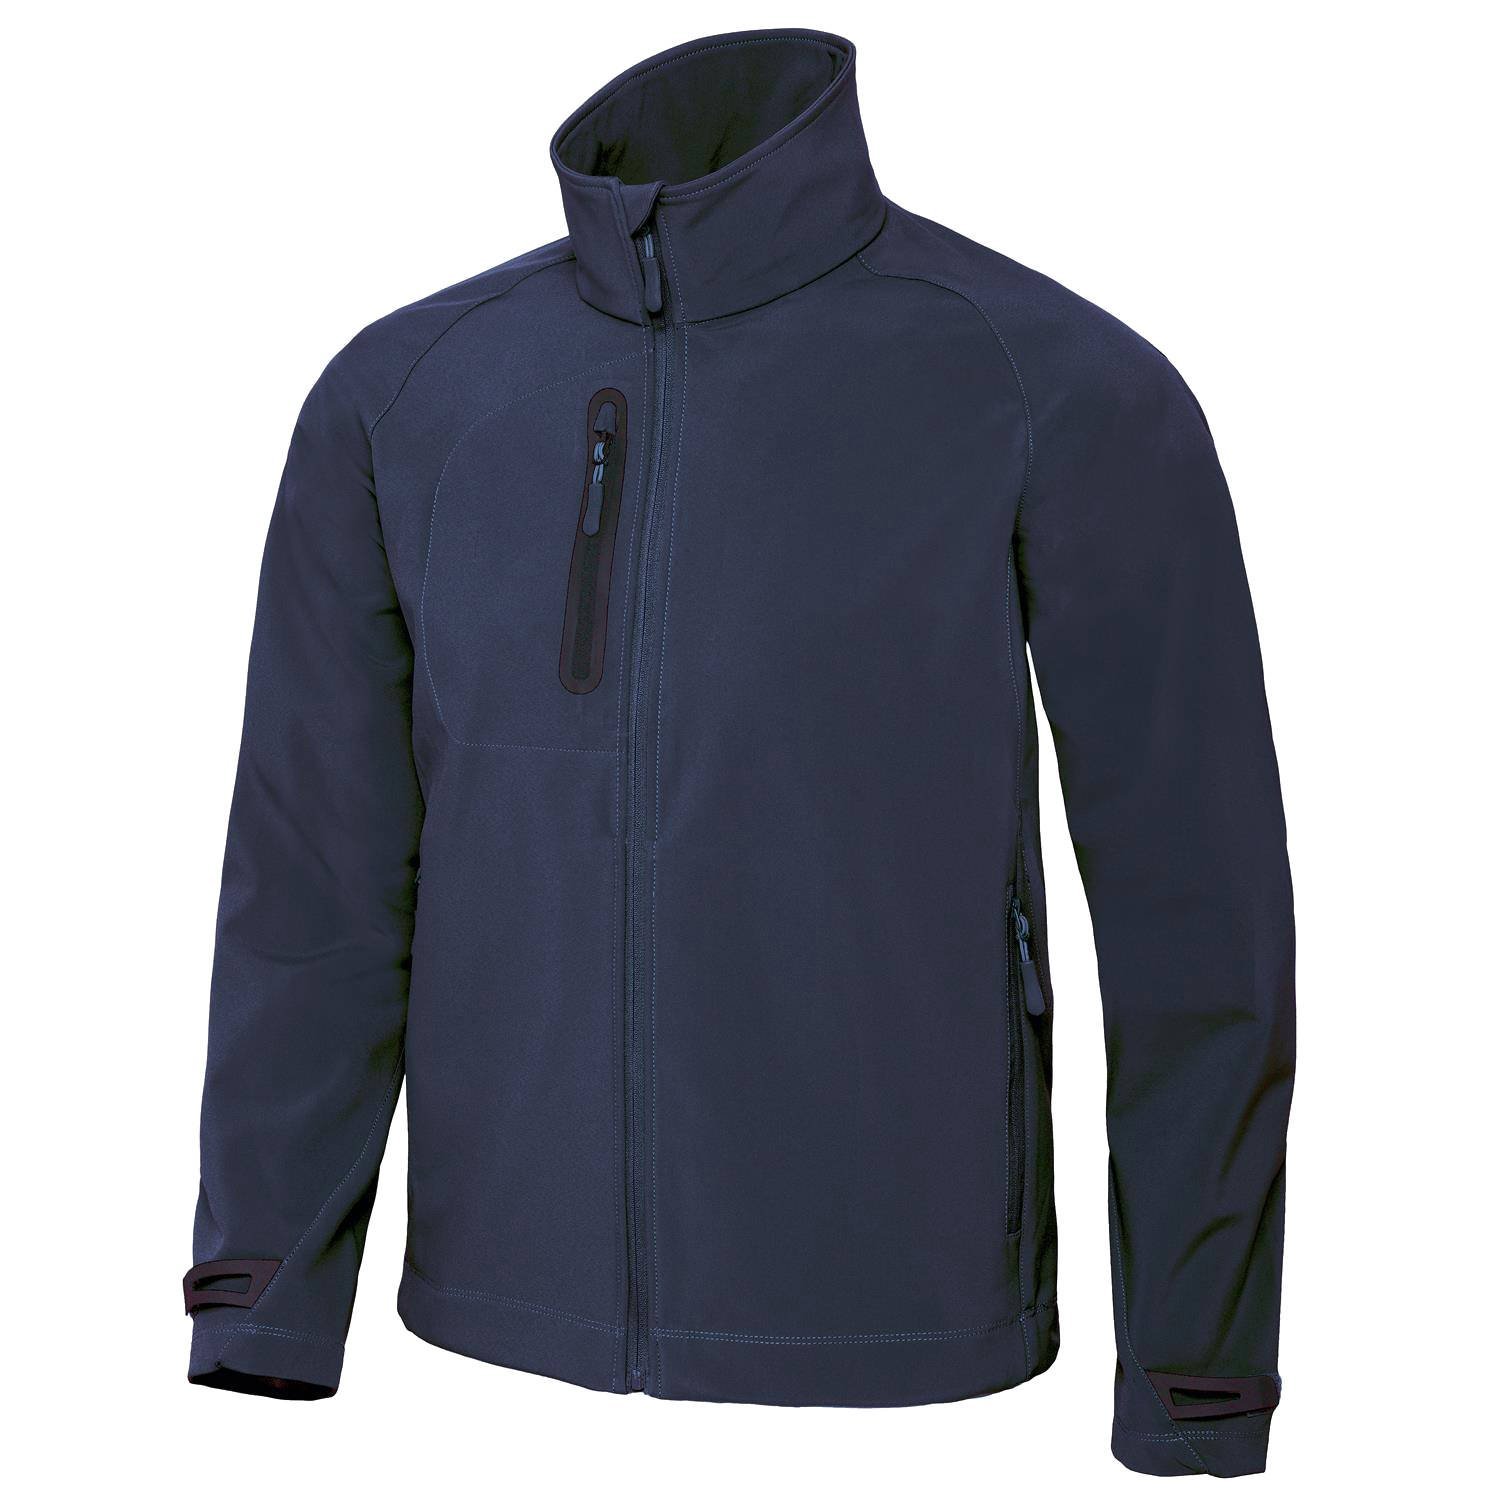 Men's Light Softshell Jacket by B and C Collection - Navy - S